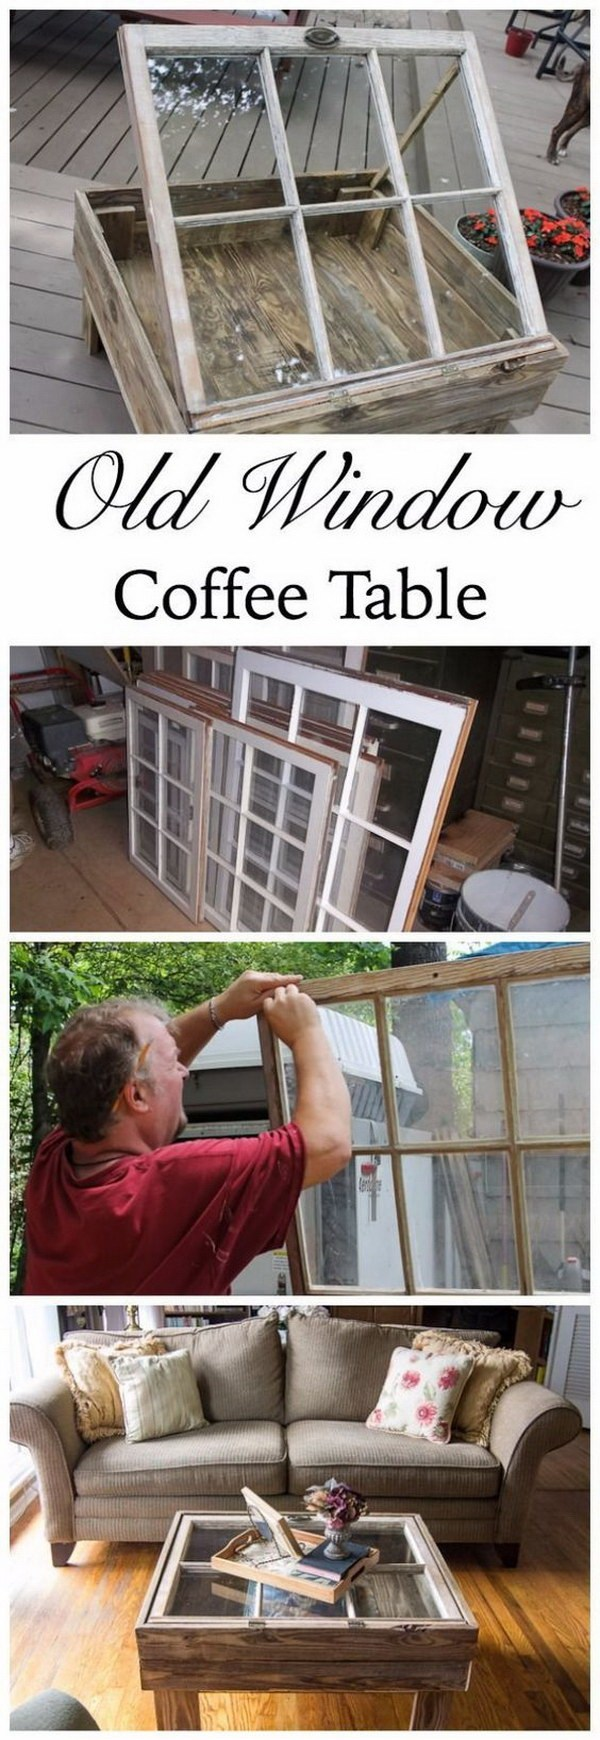 DIY Coffee Table With Old Window: